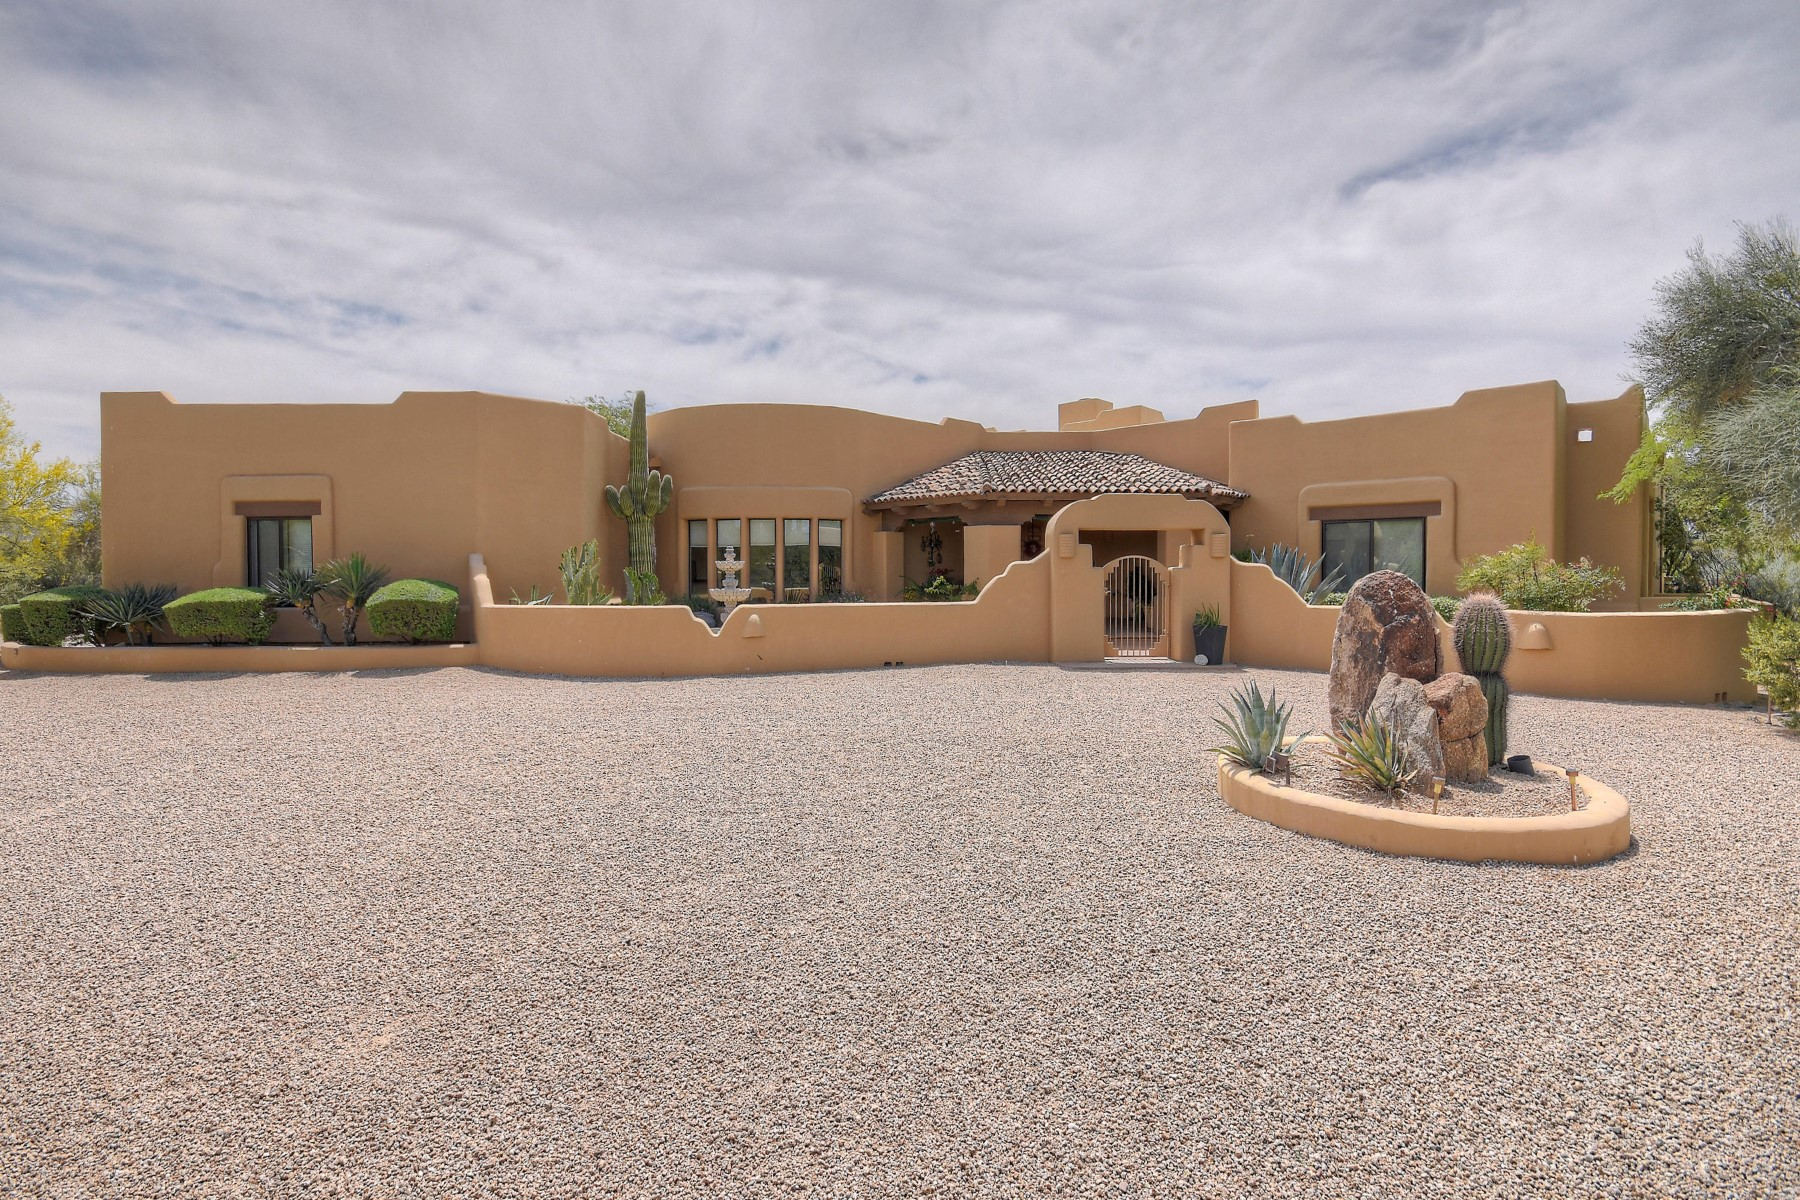 Single Family Home for Sale at Single level custom home in the guard gated community of Sincuidados 30600 N Pima Rd #117 Scottsdale, Arizona, 85266 United States